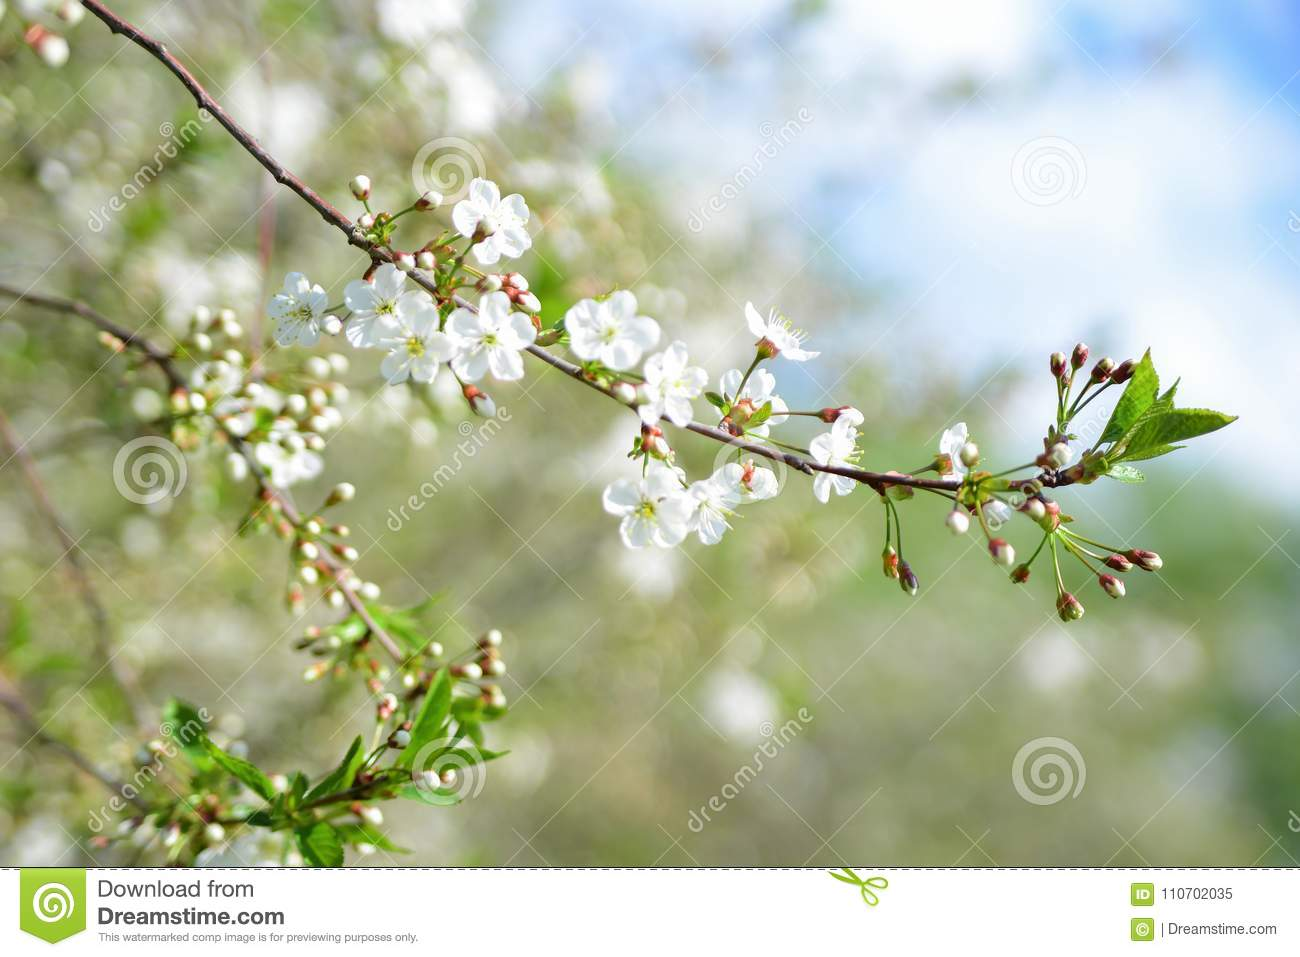 White apple flowers beautiful flowering apple trees background download white apple flowers beautiful flowering apple trees background with blooming flowers in spring mightylinksfo